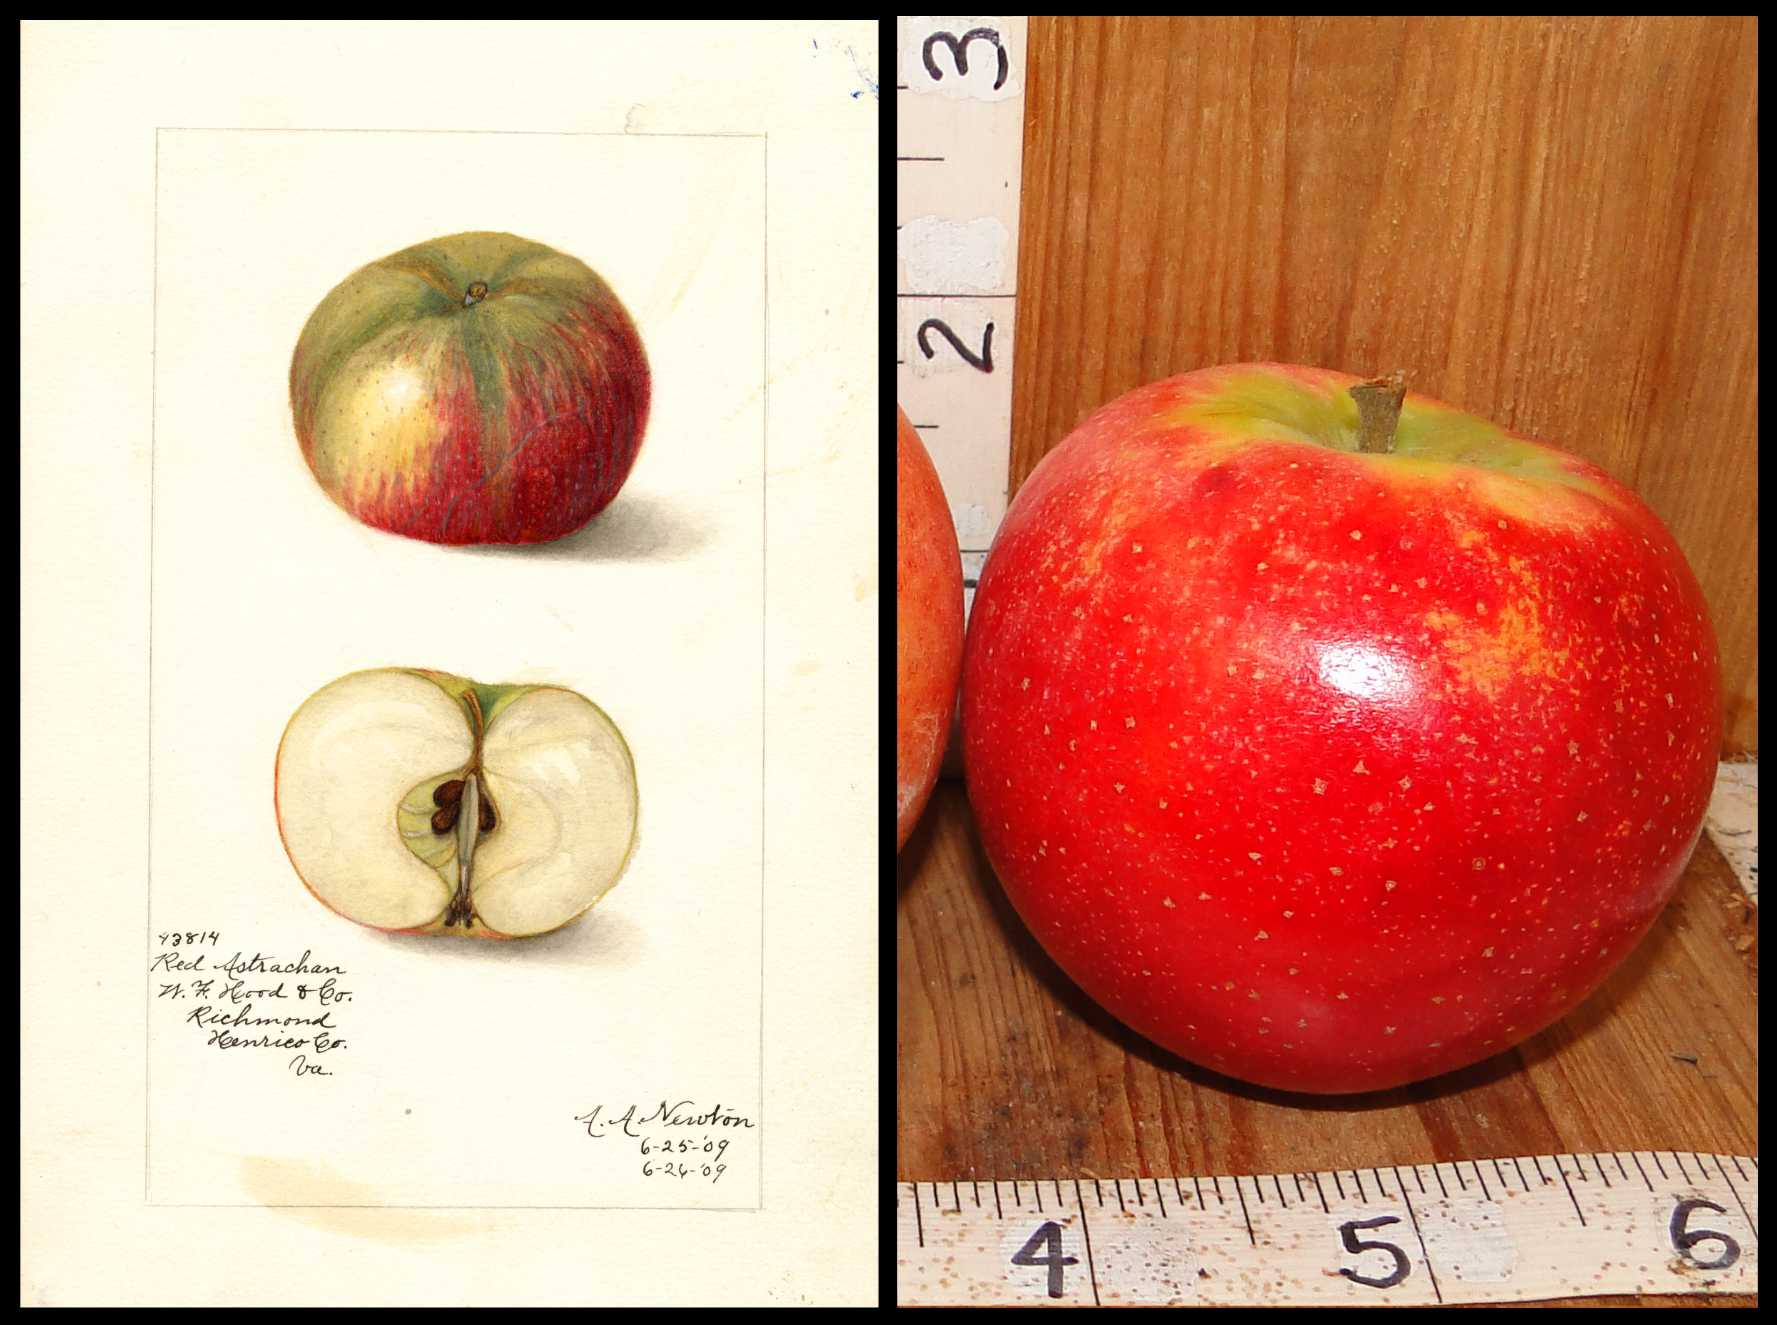 shiny red apple with small brown dots and green skin around the stem